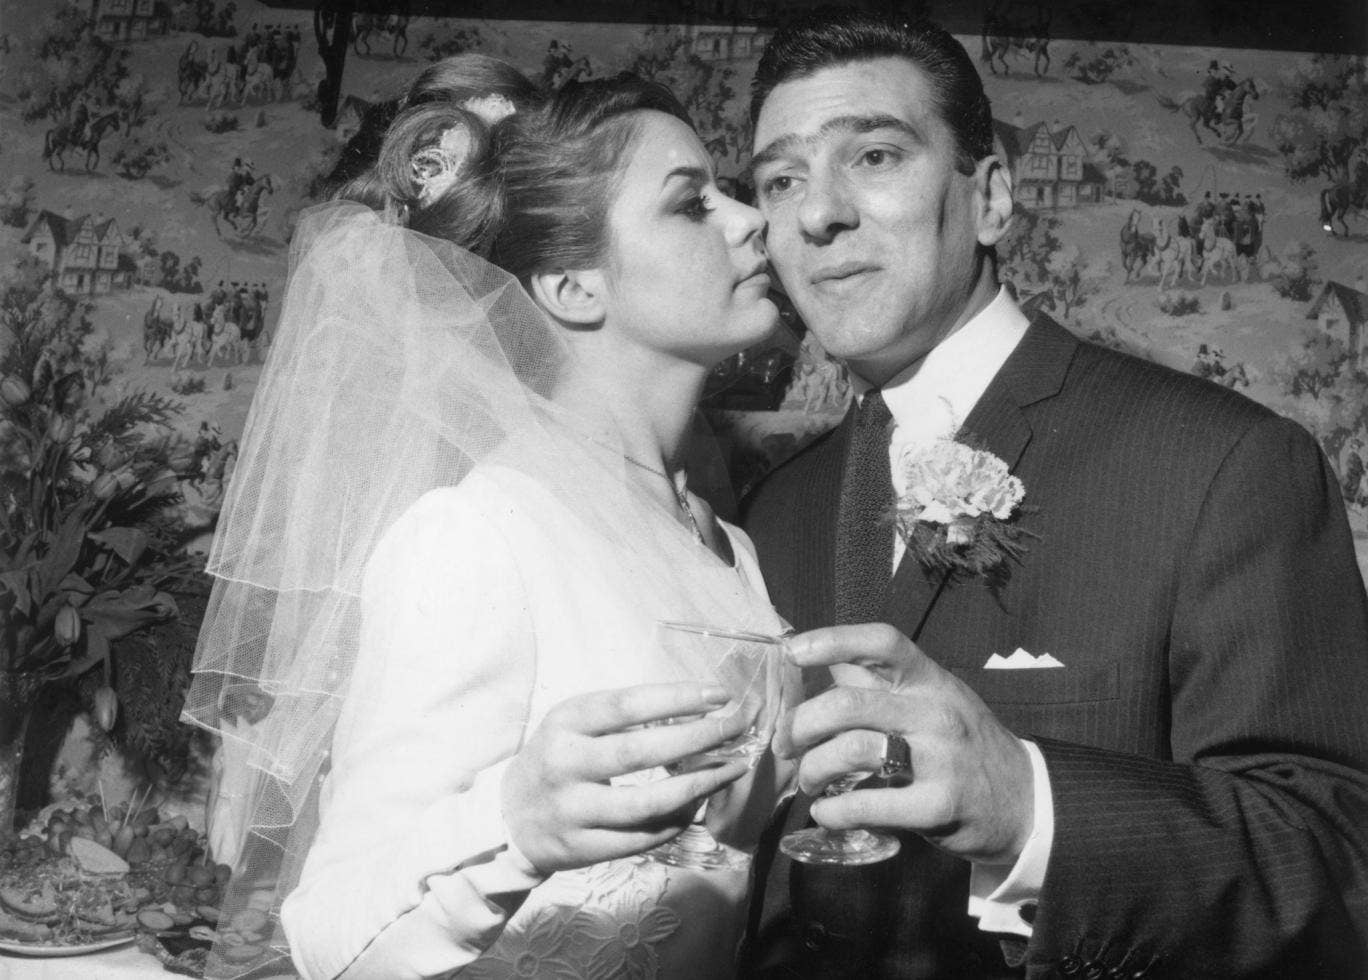 Barbara King Reggie Kray And Frances Shea On Their Wedding Day In 1965